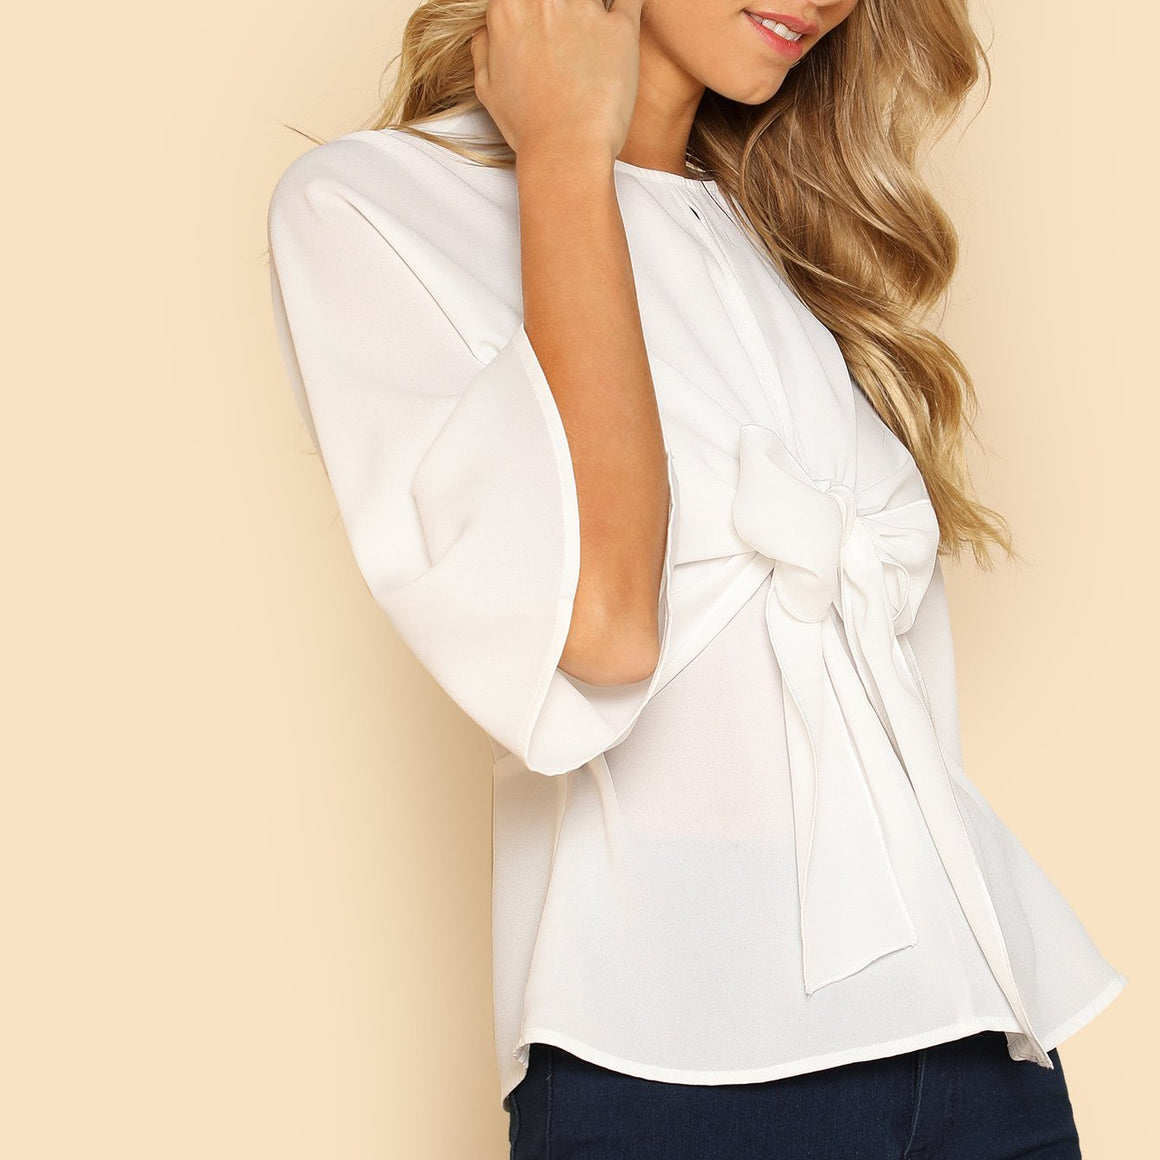 CLOCHE White Heavens Inspiration Blouse